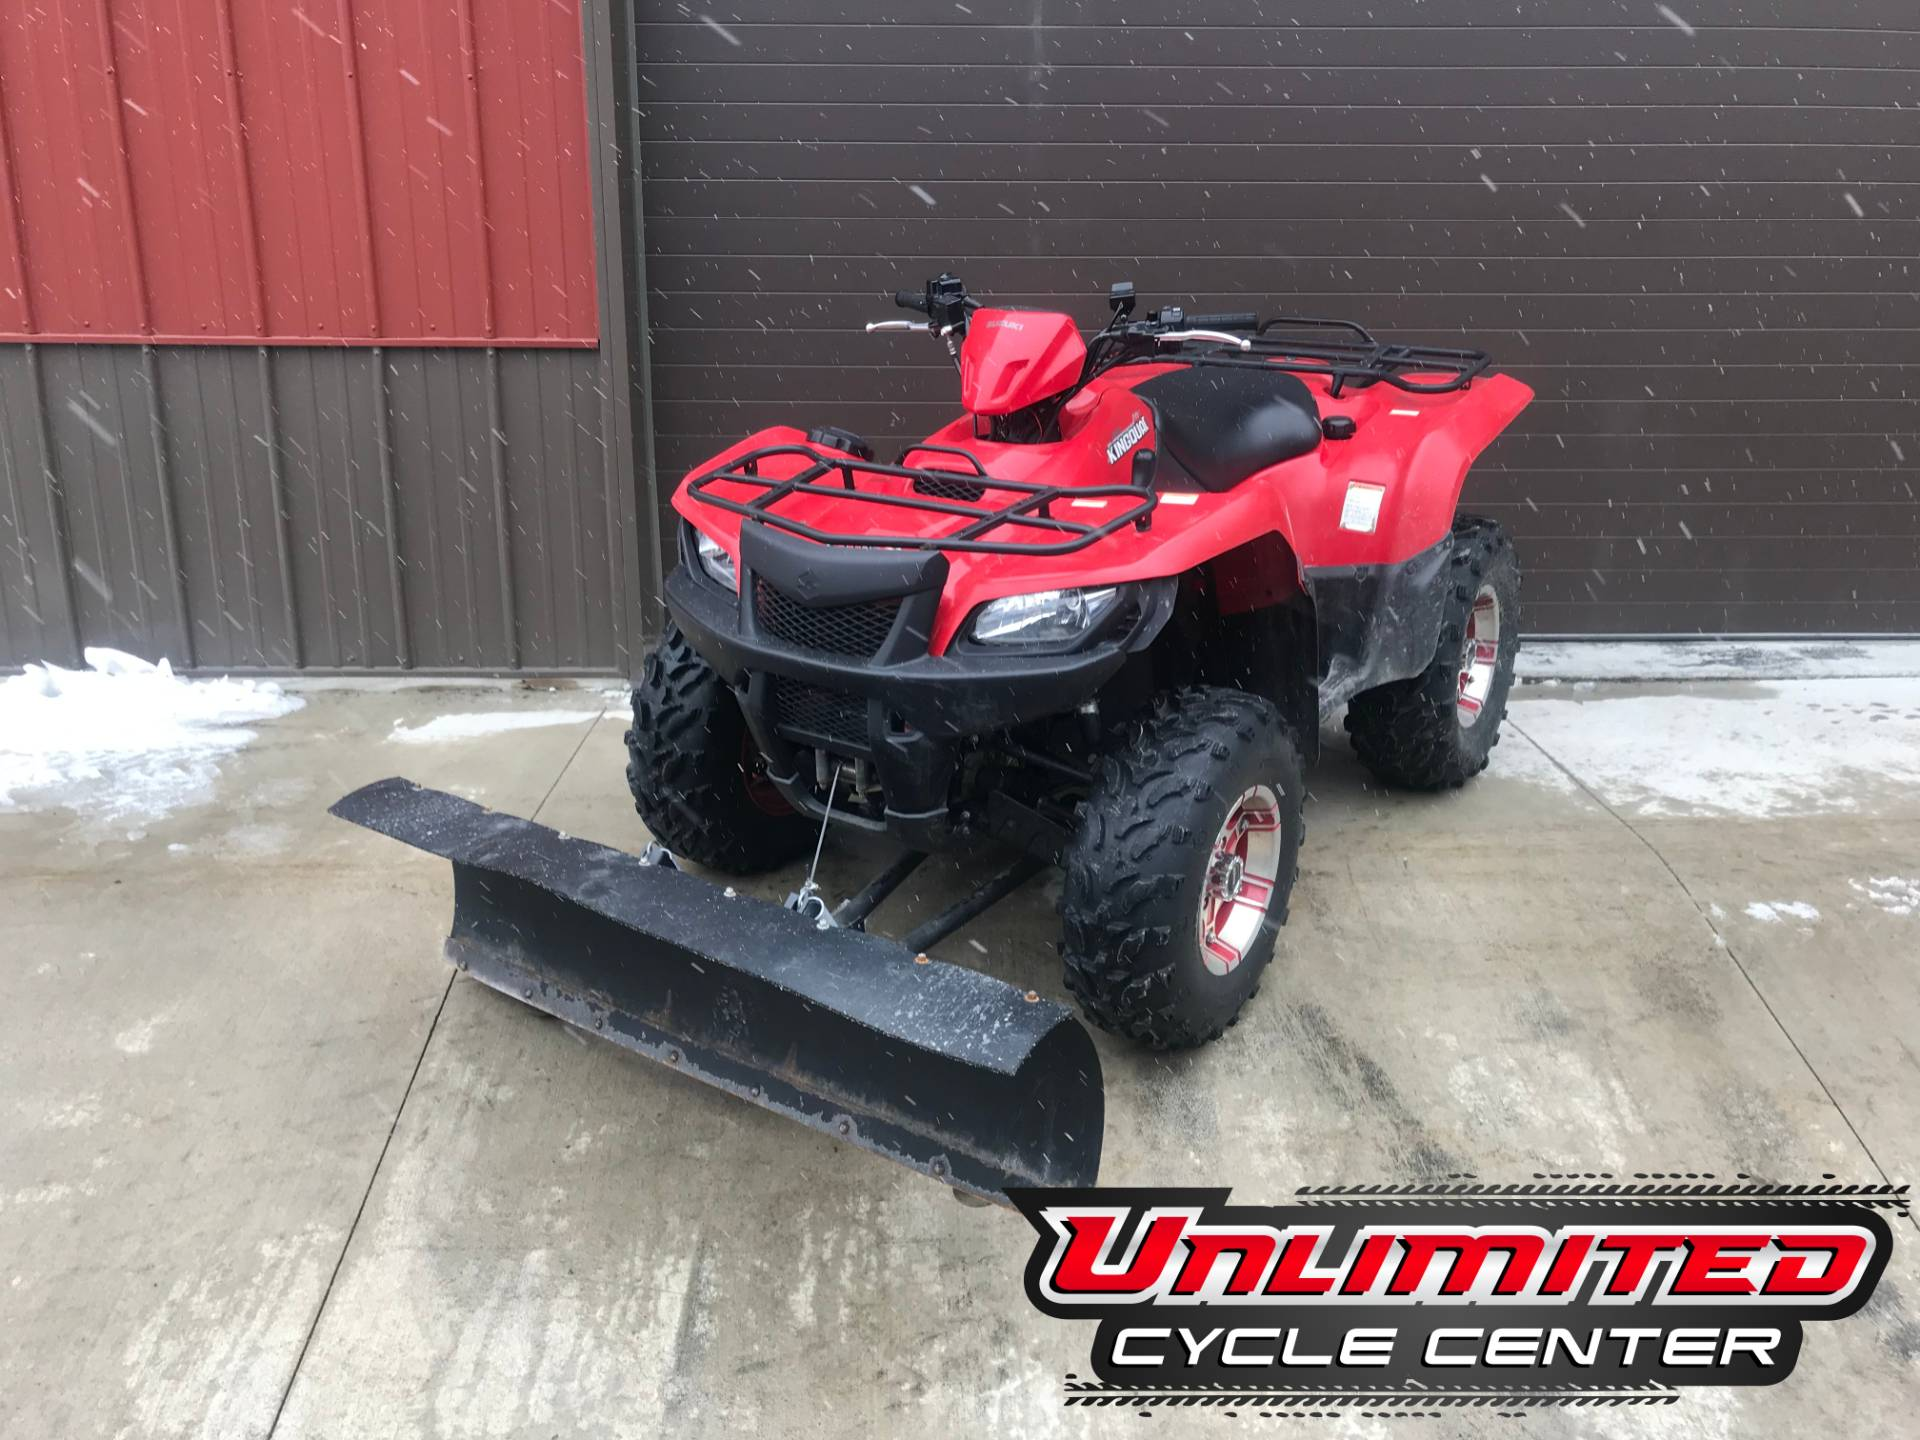 2008 Suzuki KingQuad® 450AXi 4x4 in Tyrone, Pennsylvania - Photo 1